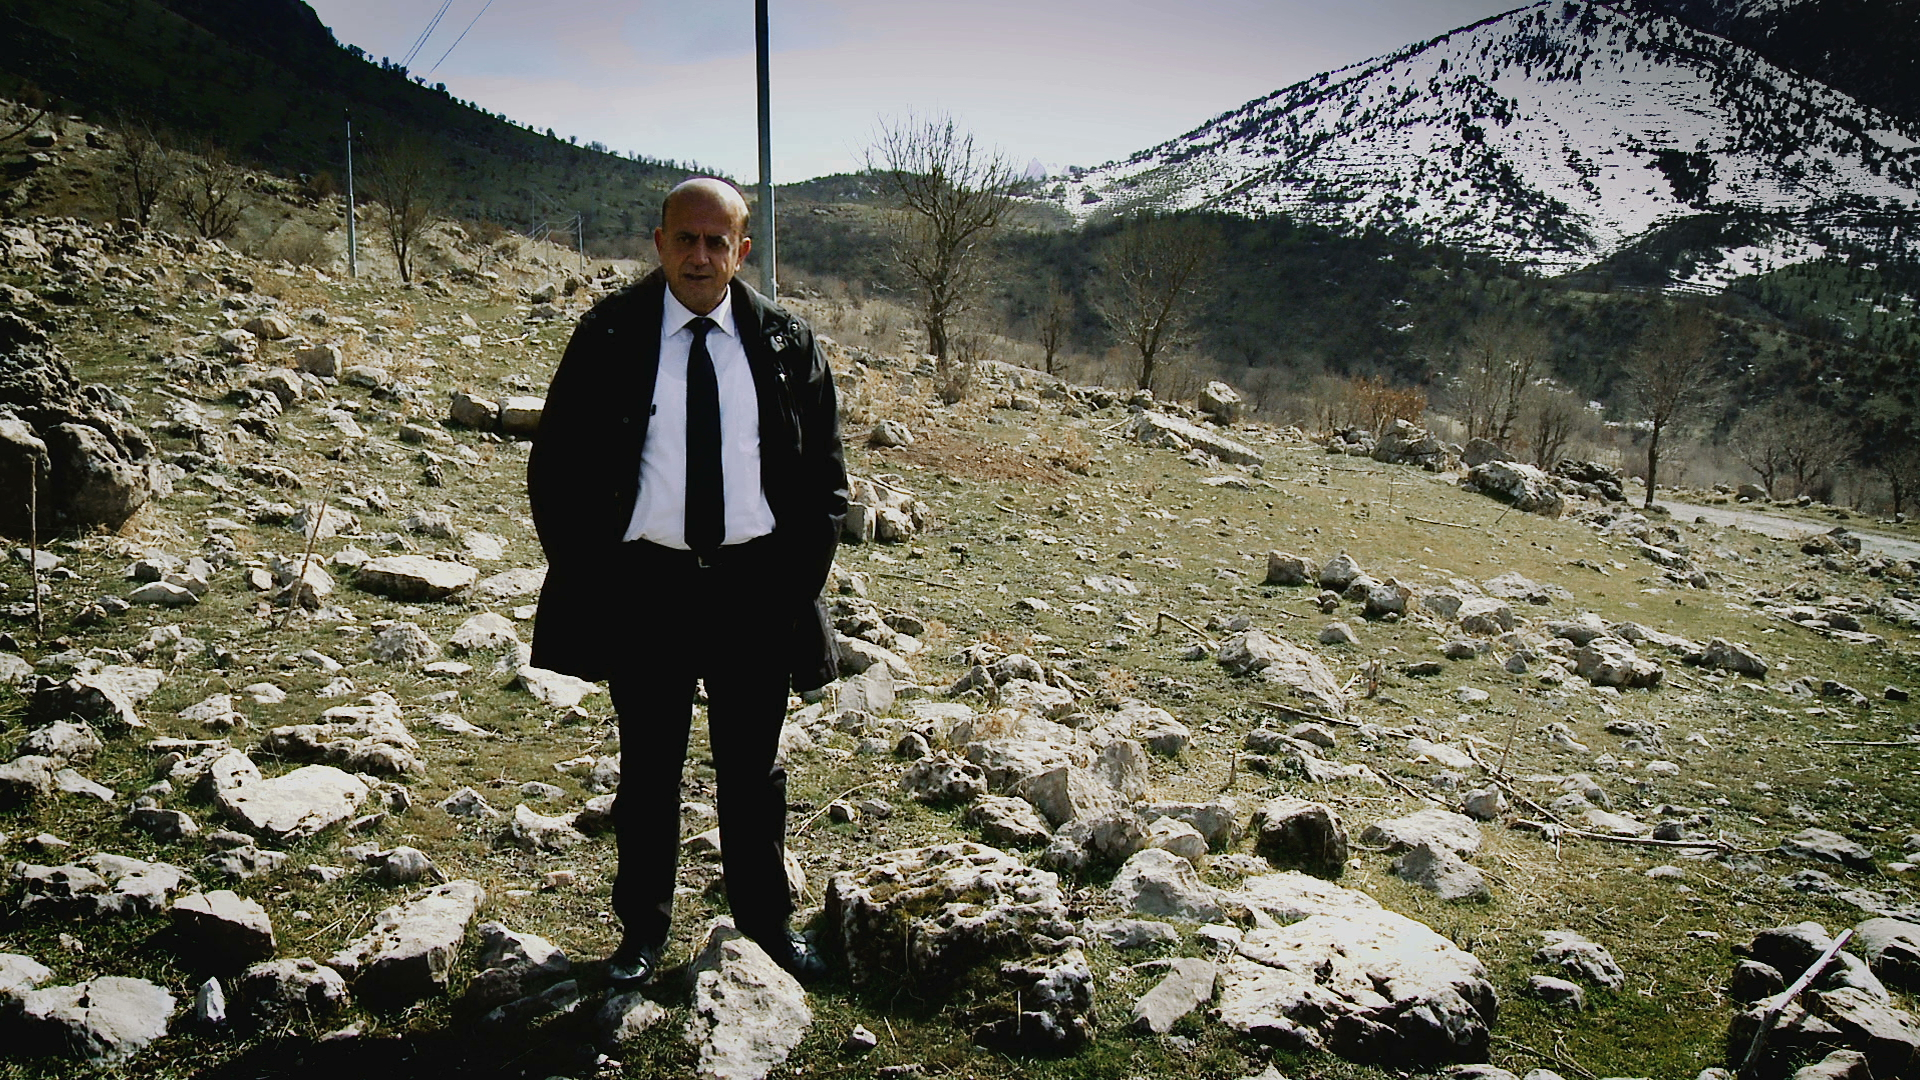 SHORESH HAJI MUSTAFA RASOOL relates the nightmare of fleeing towards Iran in March 1988 in deep snow, after the Iraqi regime's gas attack on the PUK headquarters in the Jafati valley. In the mountains, he saw hundreds of frozen animal carcasses, elderly people abandoned by their relatives and a woman giving birth in the snow. This gave him hope for Kurdistan's future.